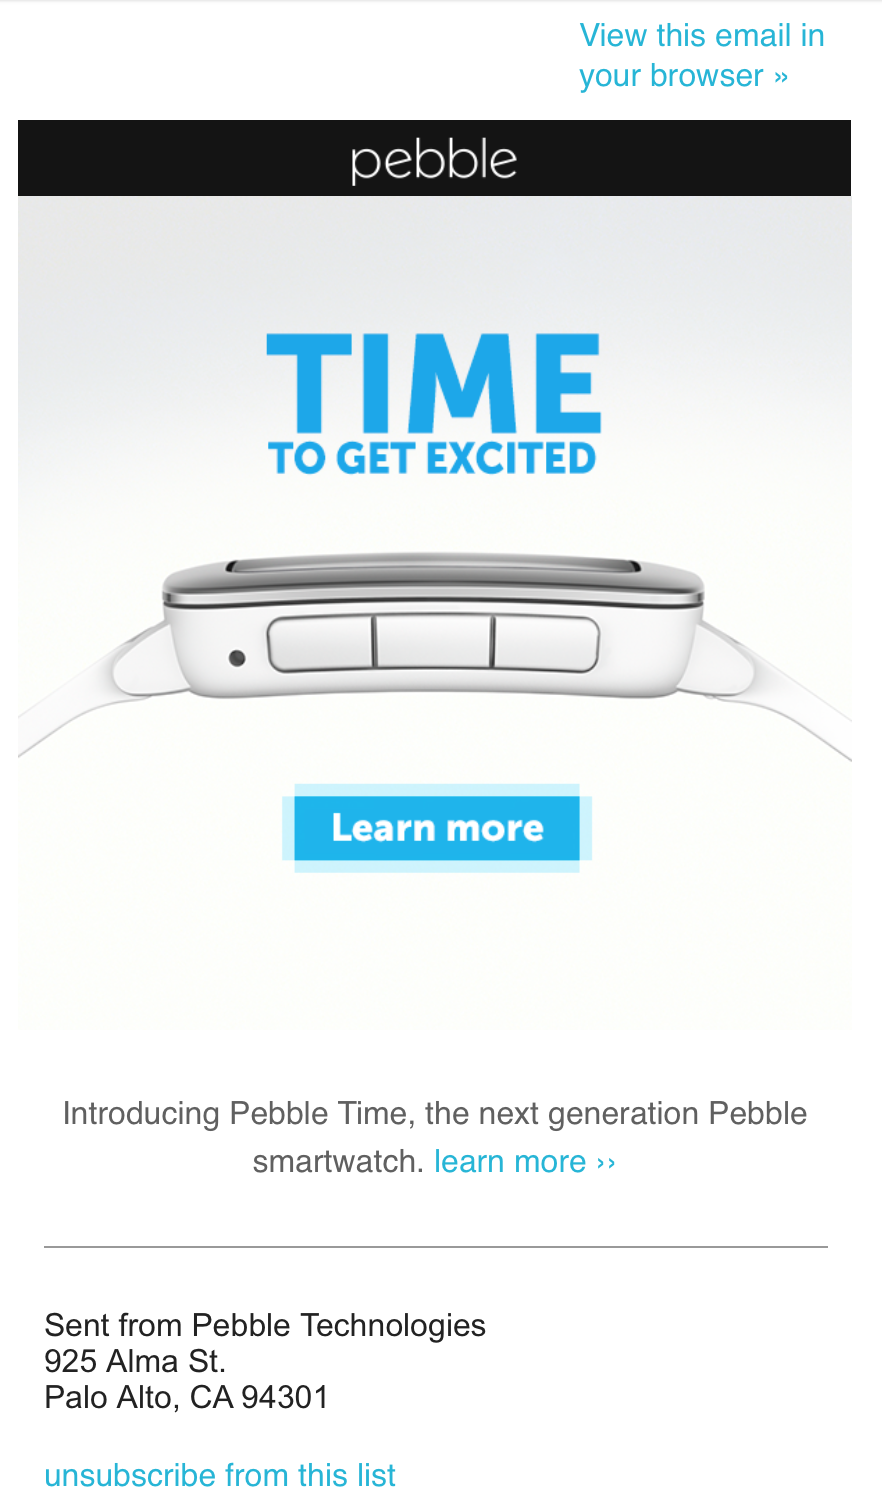 pebble-email